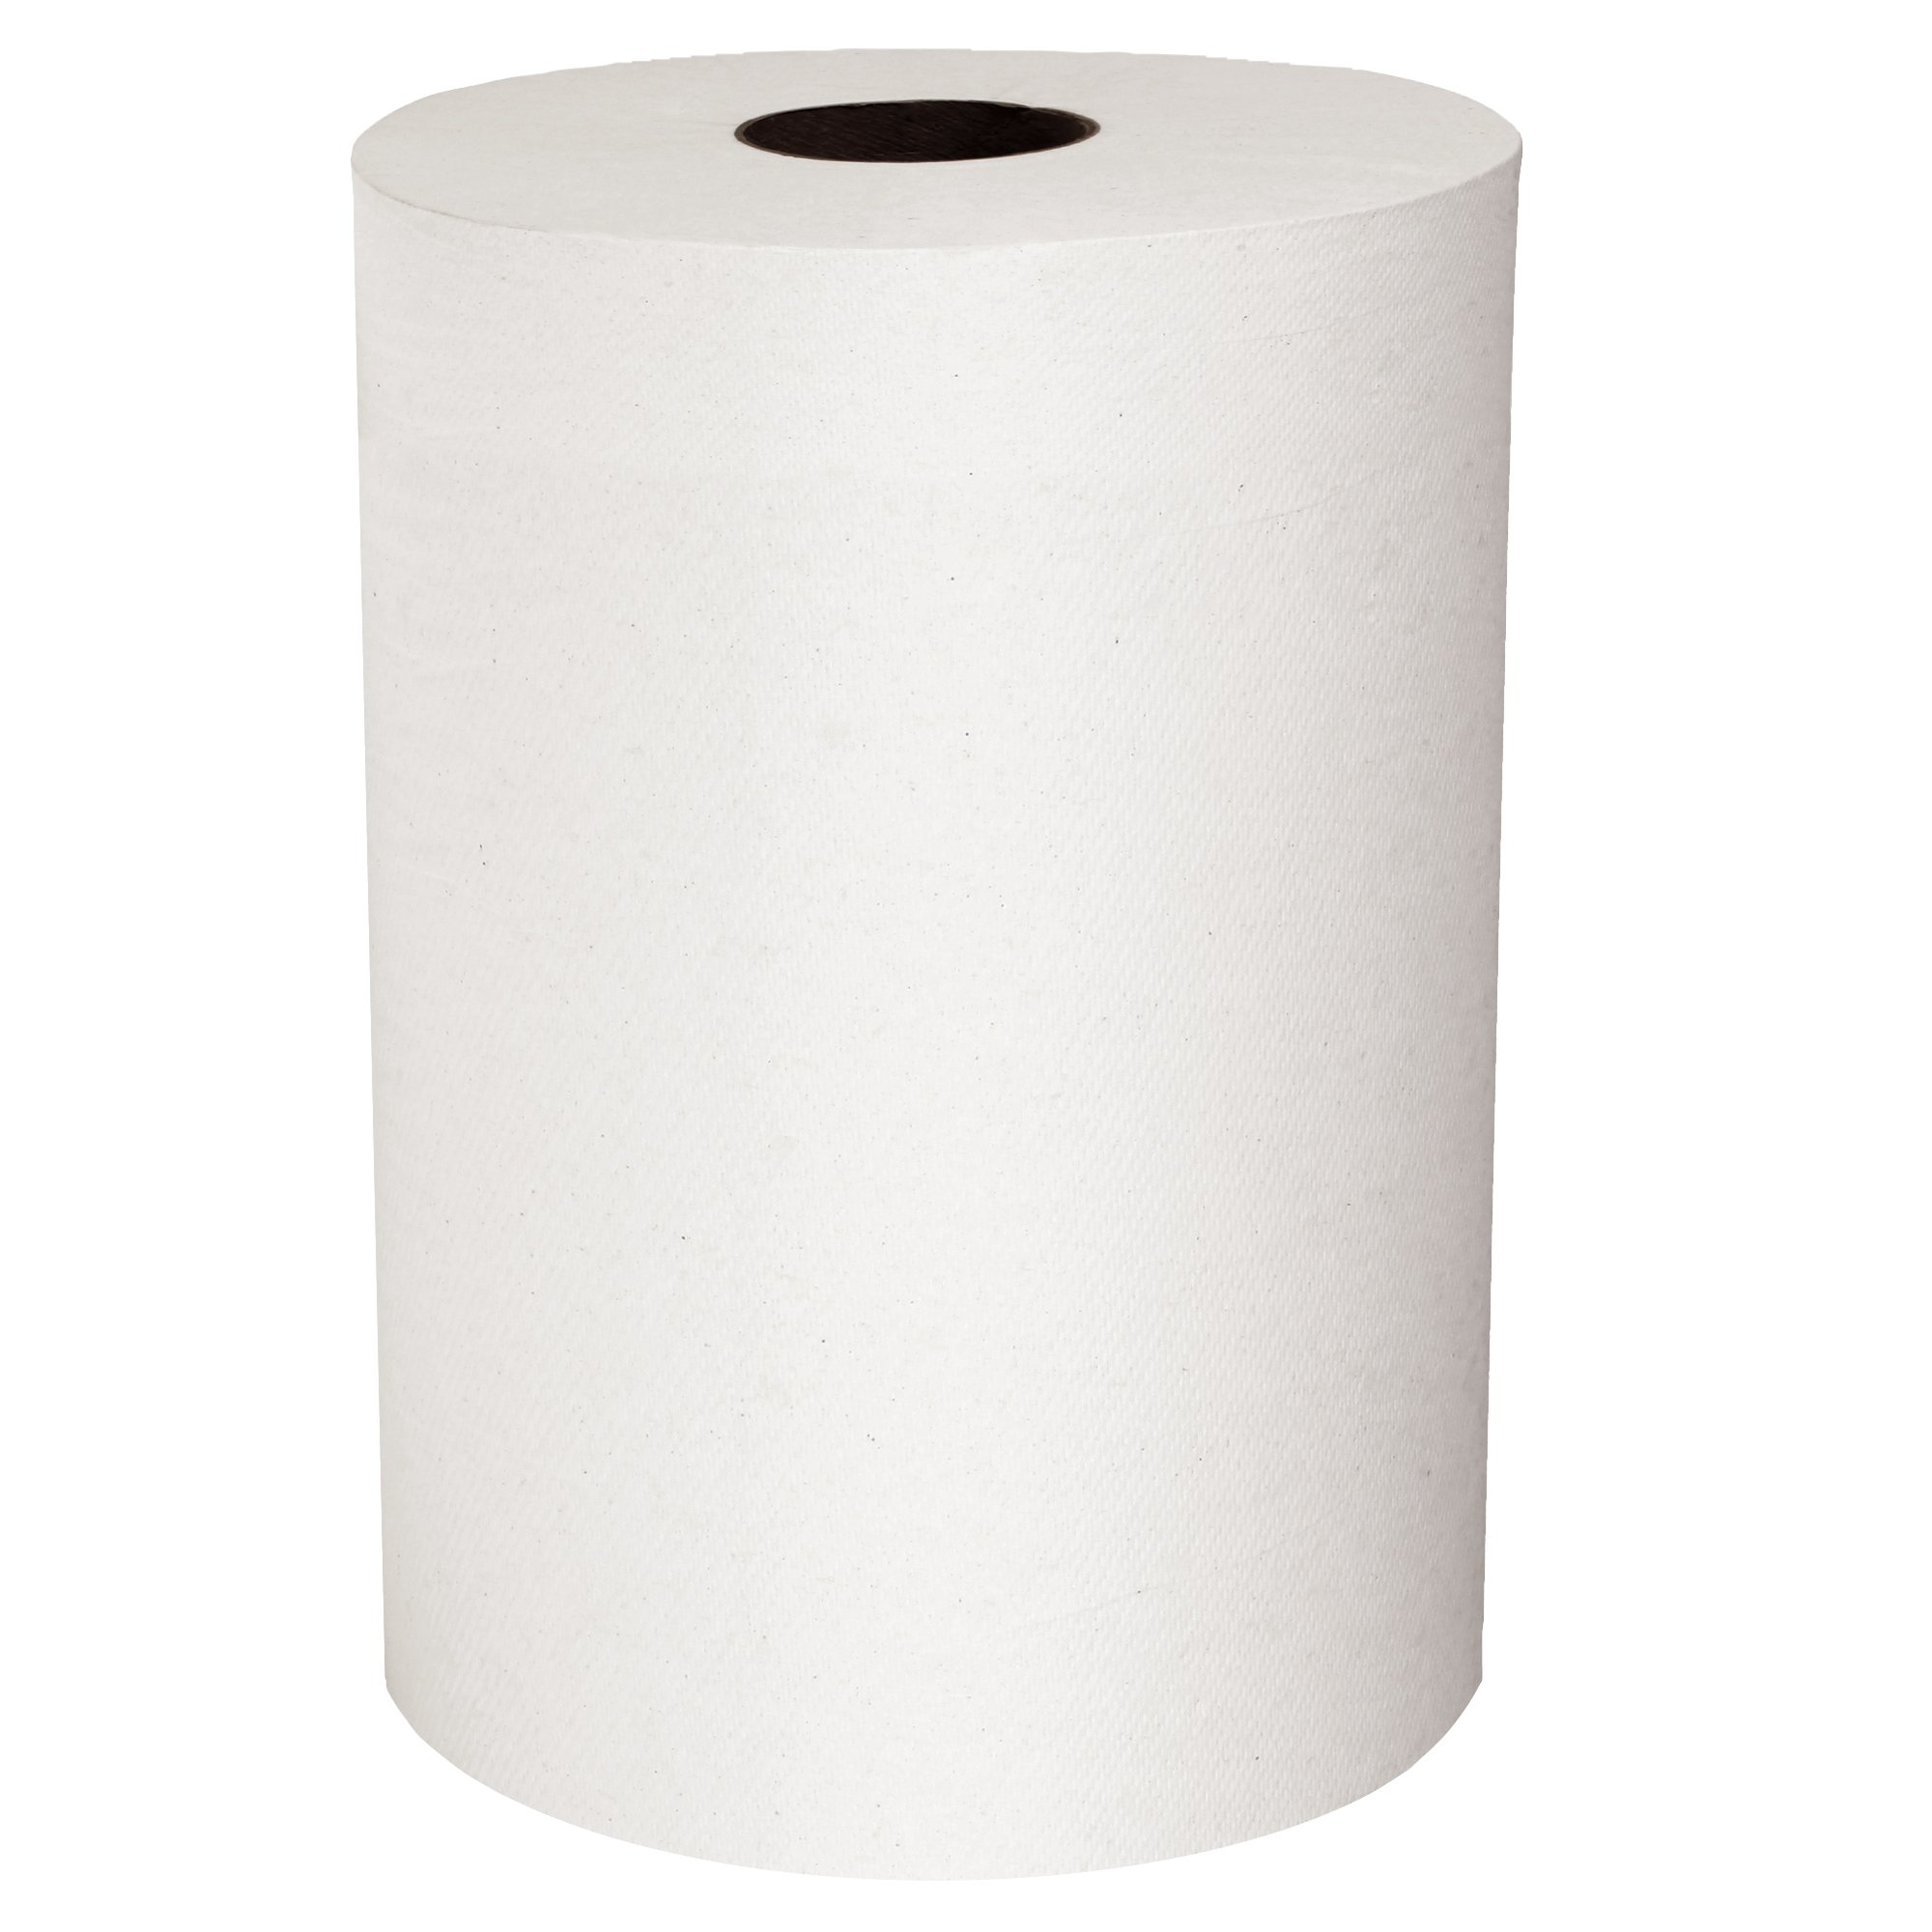 Scott Control Slimroll Hard Roll Paper Towels (12388) with Fast-Drying Absorbency Pockets, White, 6 Rolls/Case, 580' / Roll